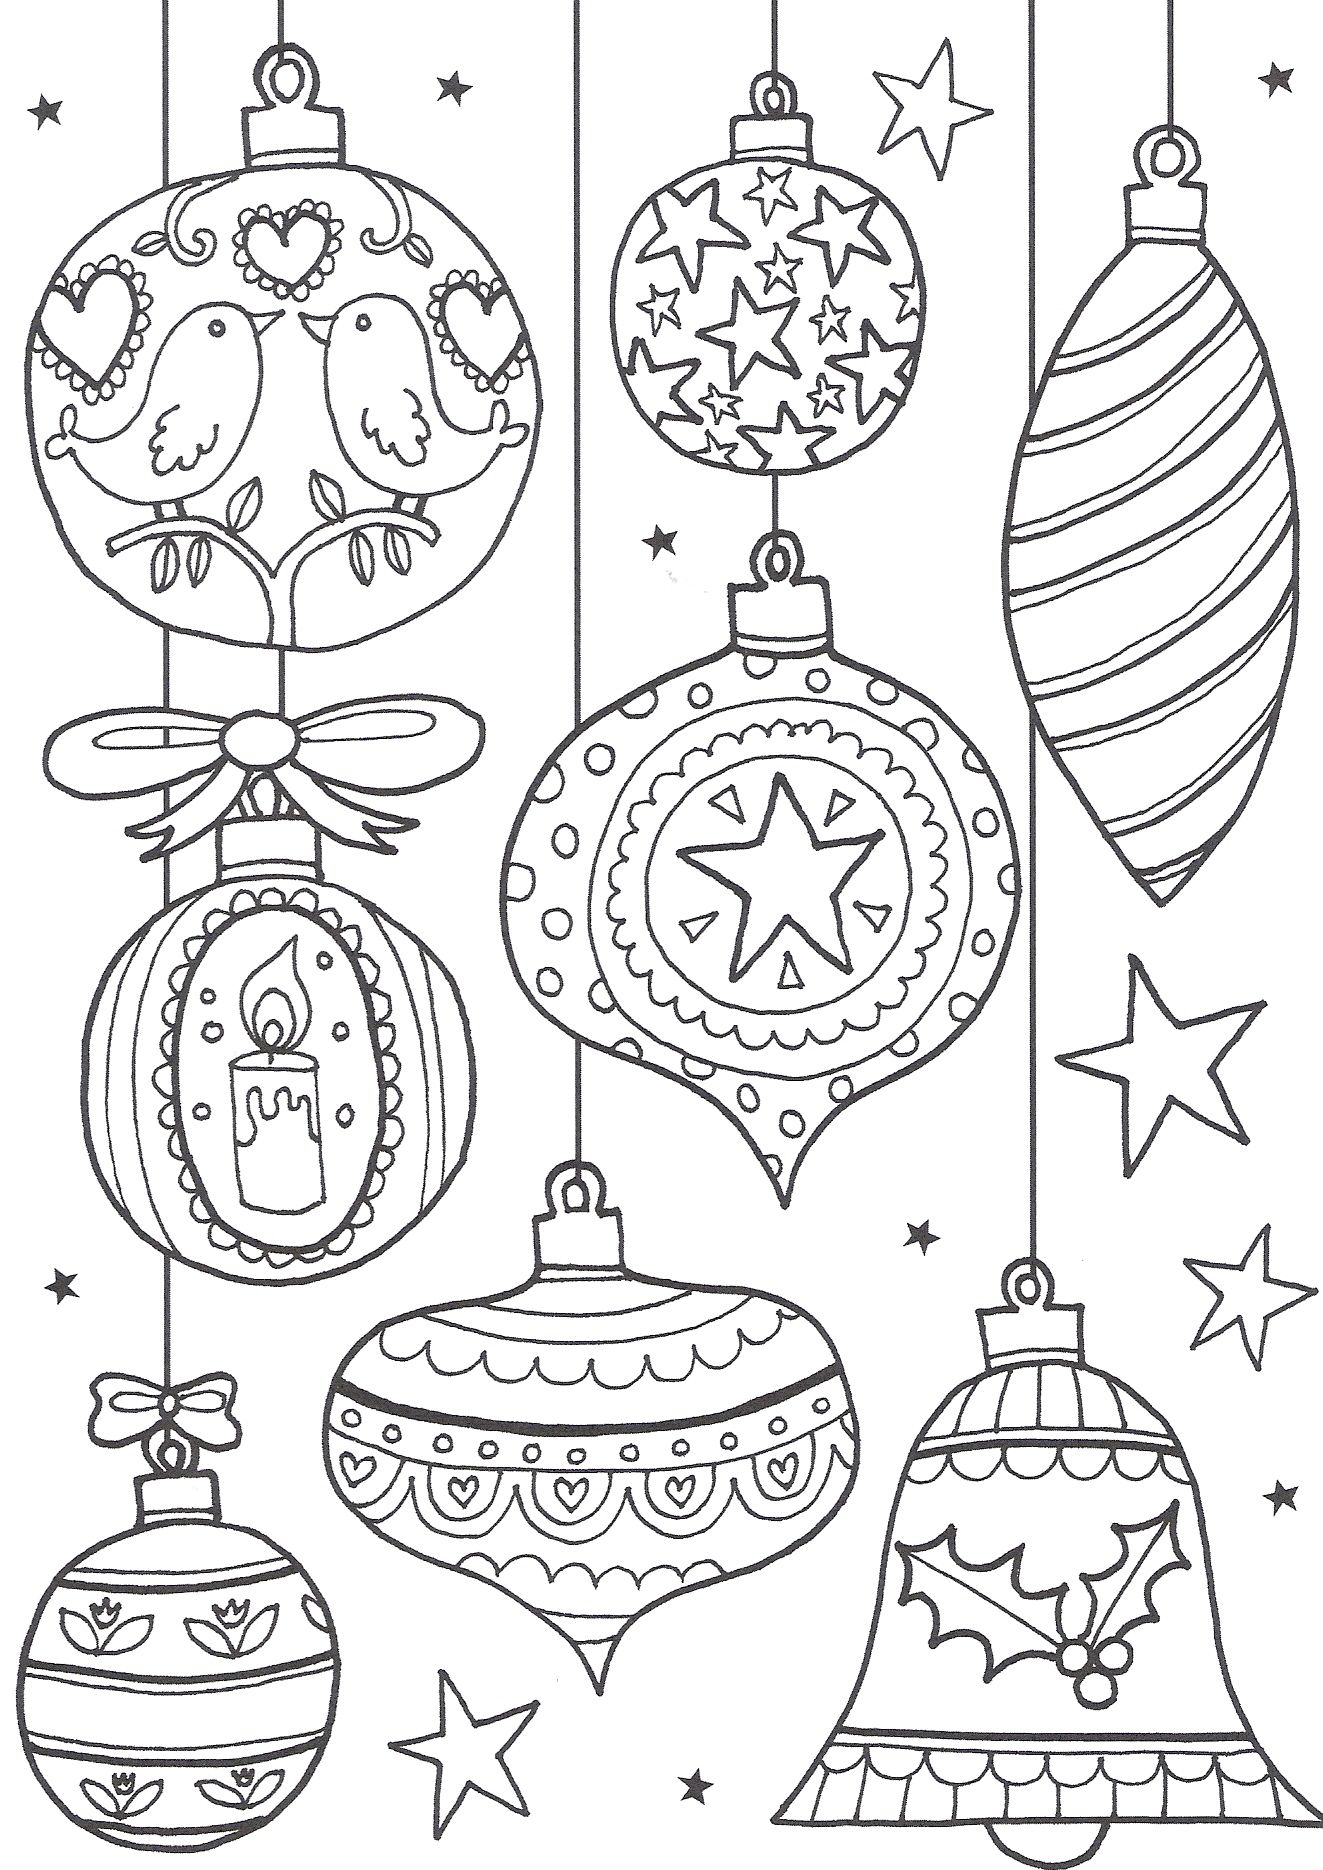 Christmas Coloring Websites With Free Colouring Pages For Adults The Ultimate Roundup